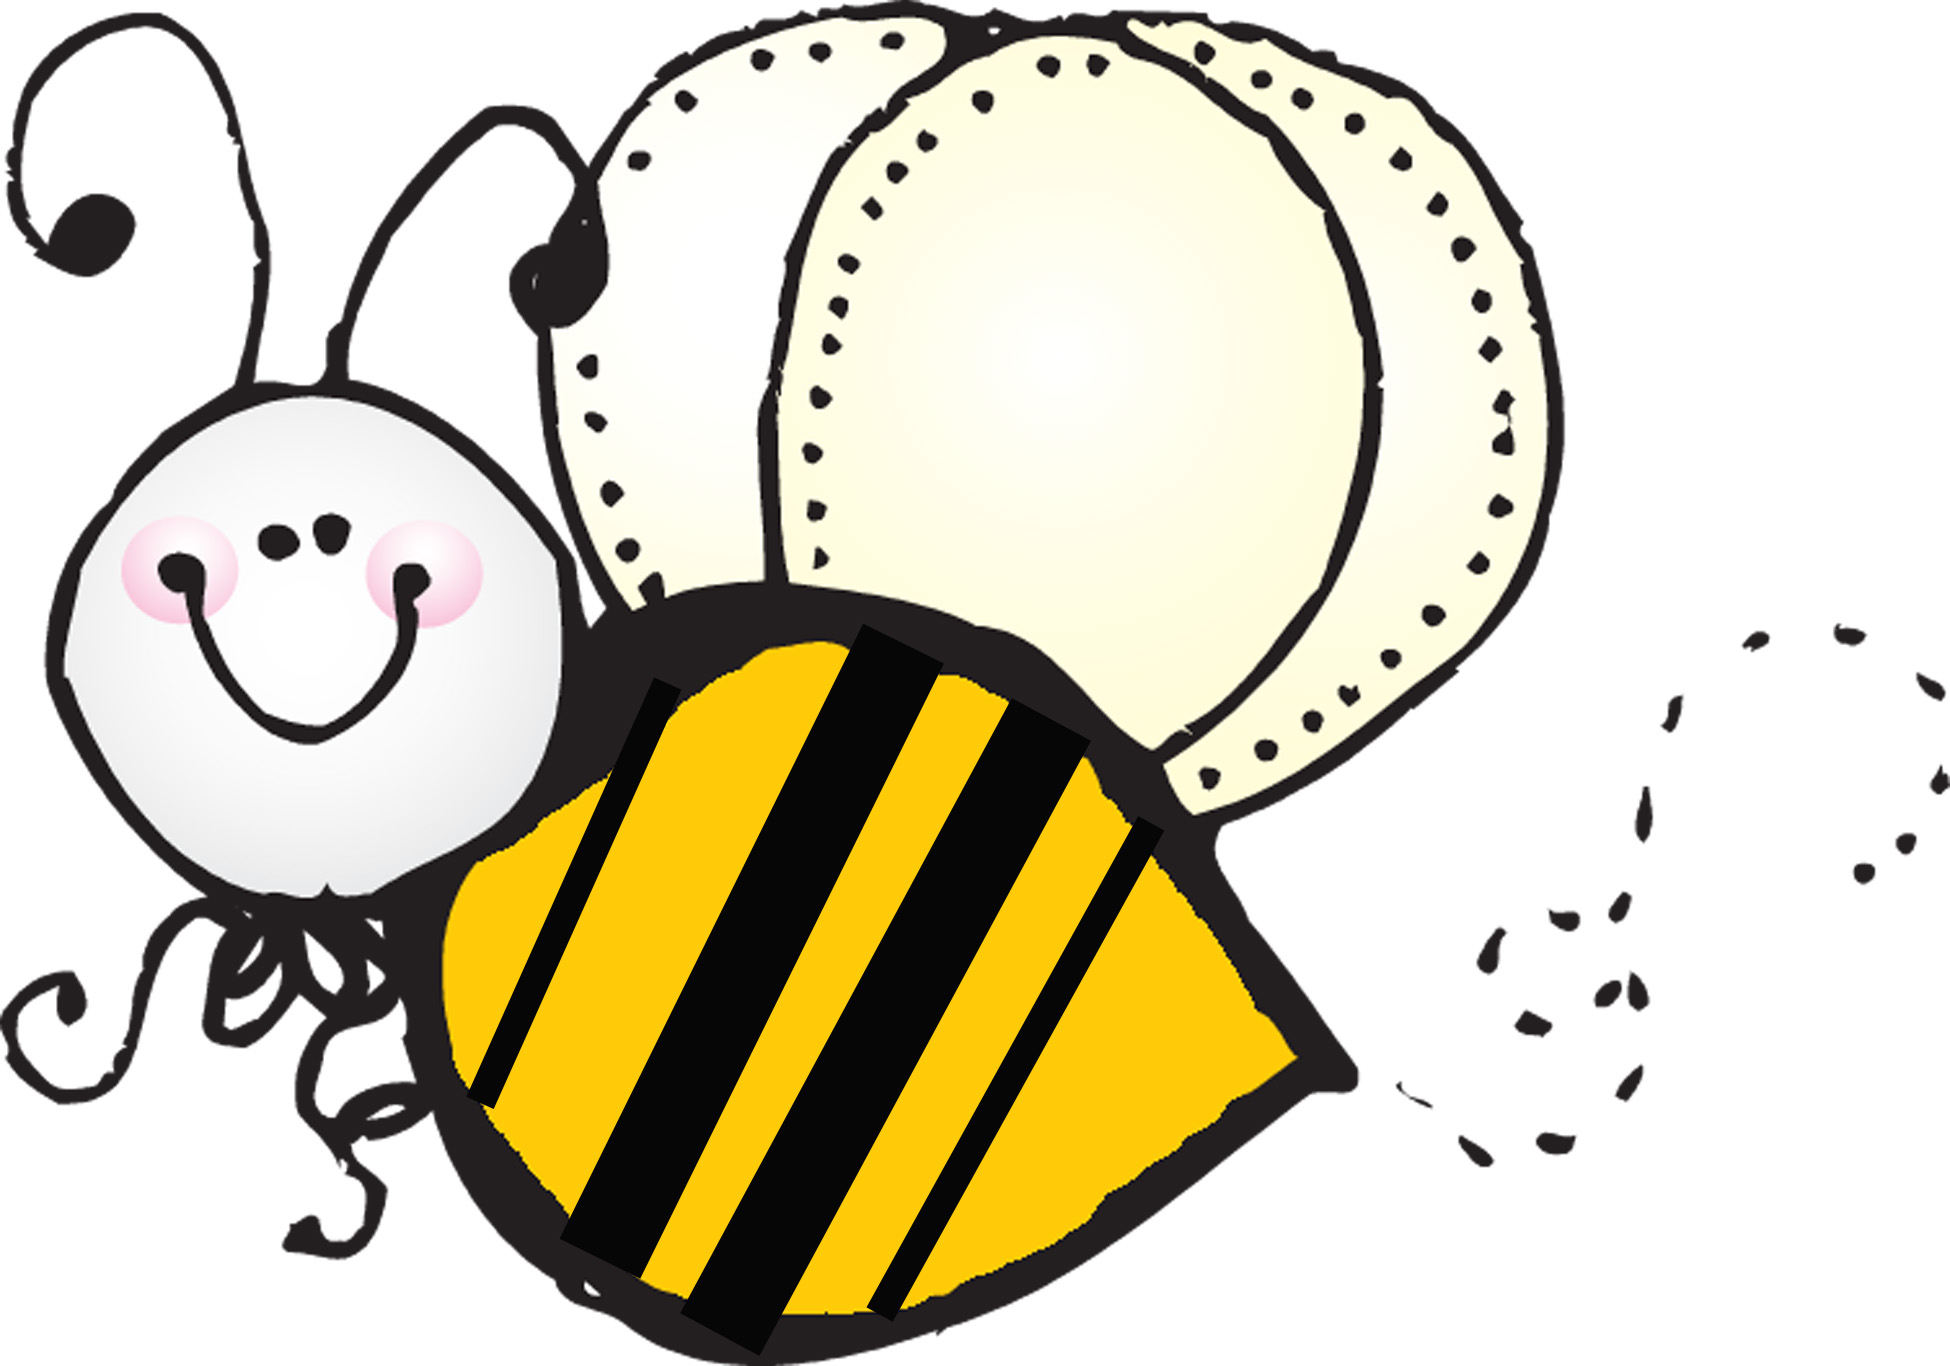 1950x1366 Bees Clipart Busy Bee